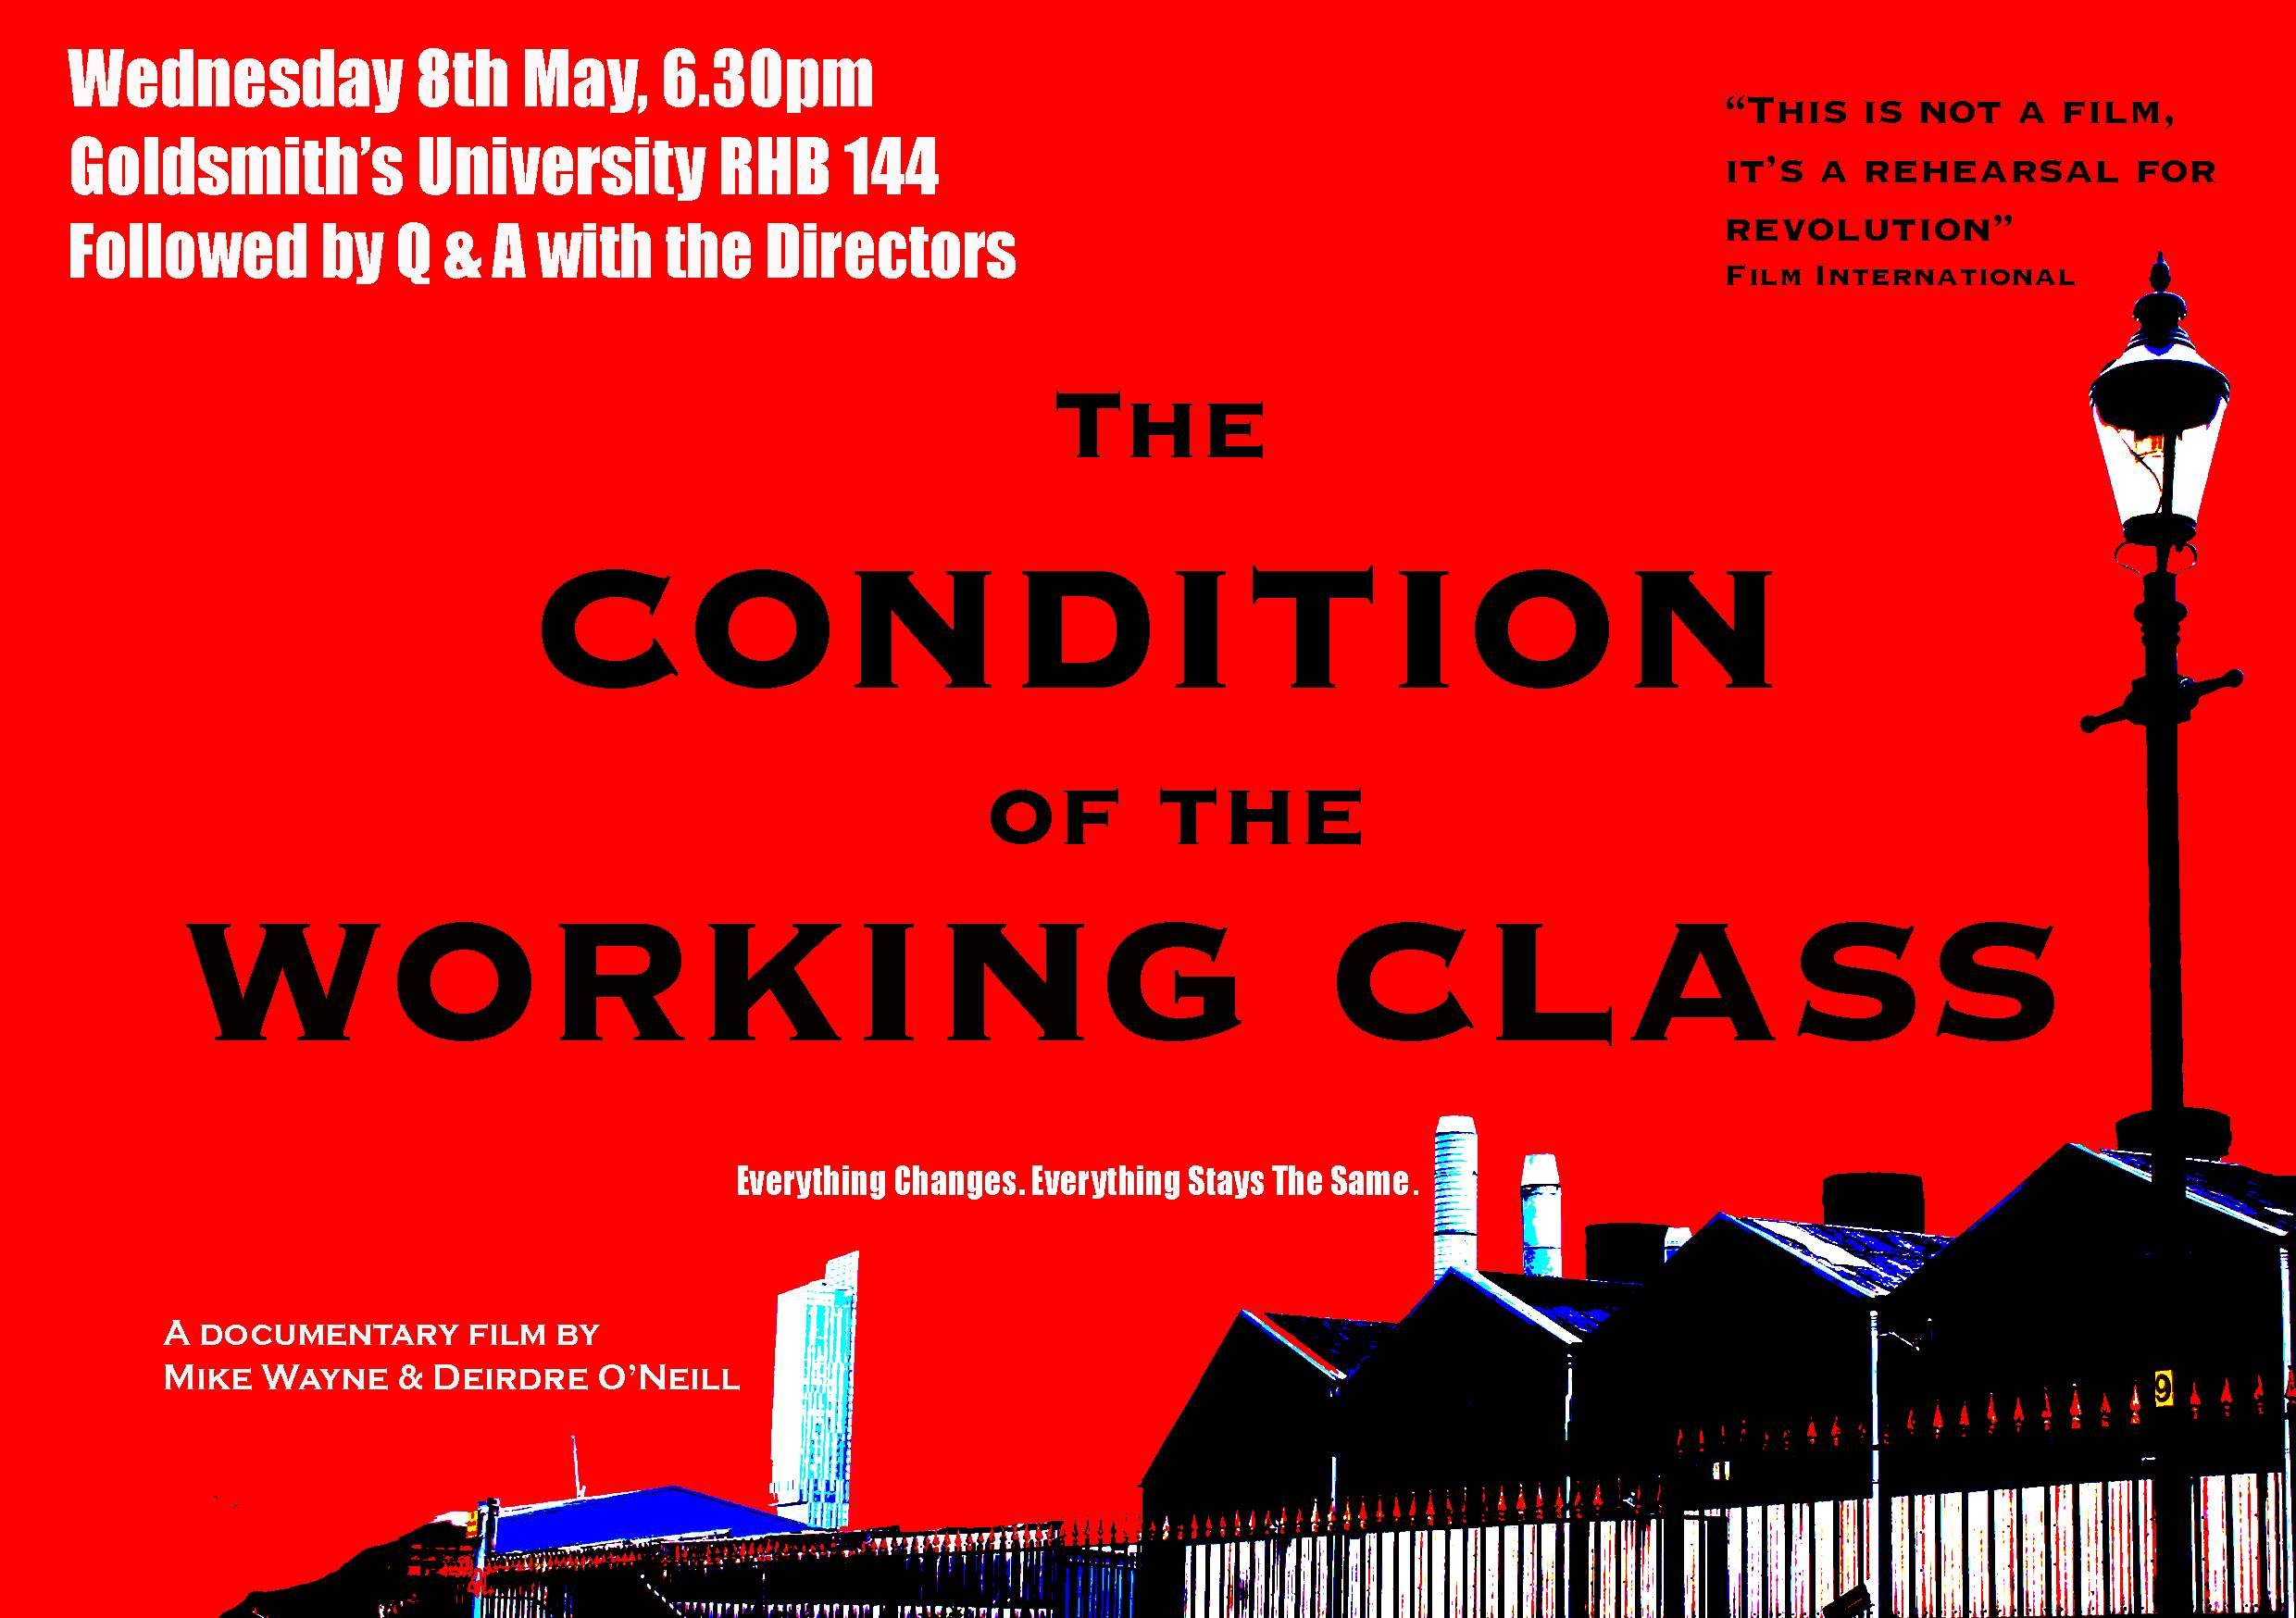 the condition of the working class The condition of the working class in england the condition of the working class in england - title : the condition of the working class in england.